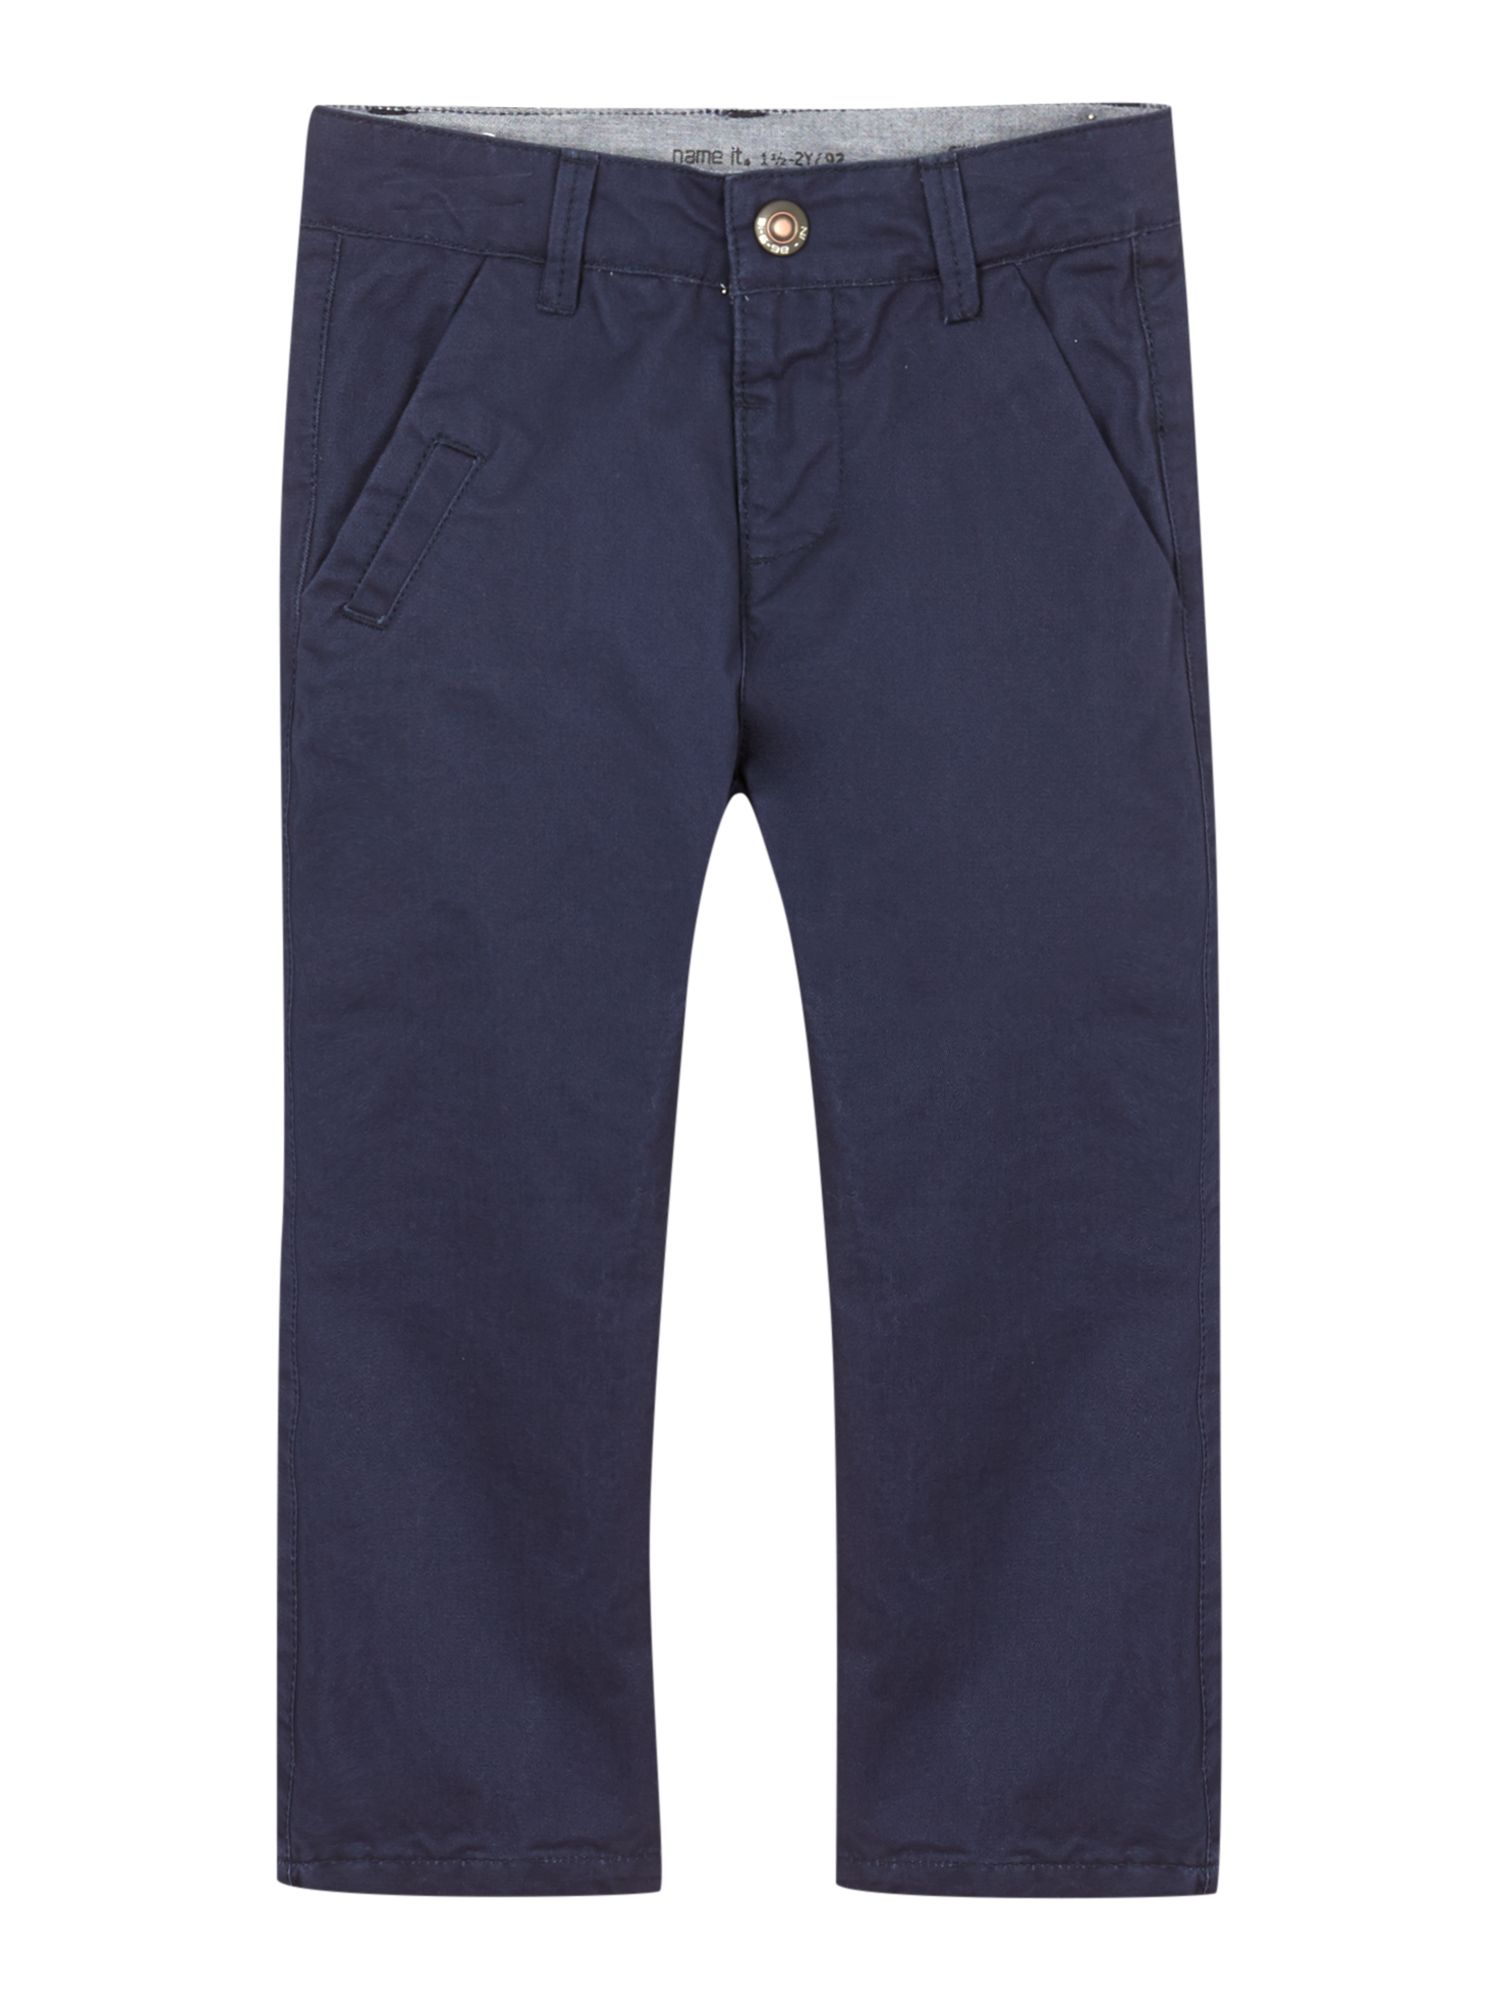 Boys straight leg chino trouser